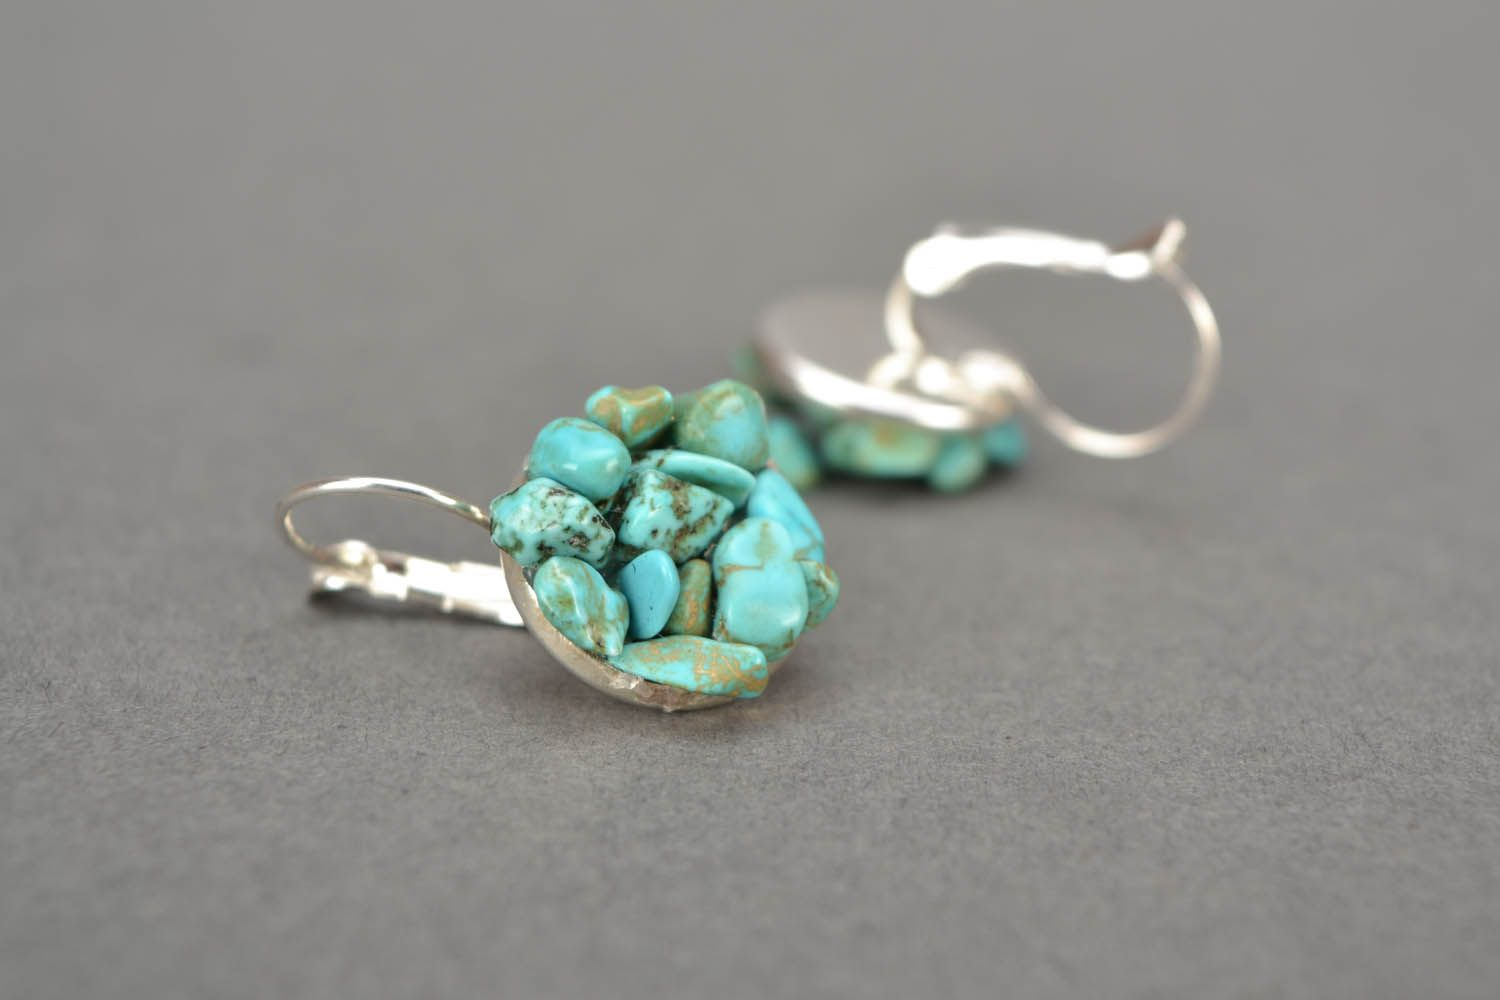 Handmade turquoise earrings photo 4